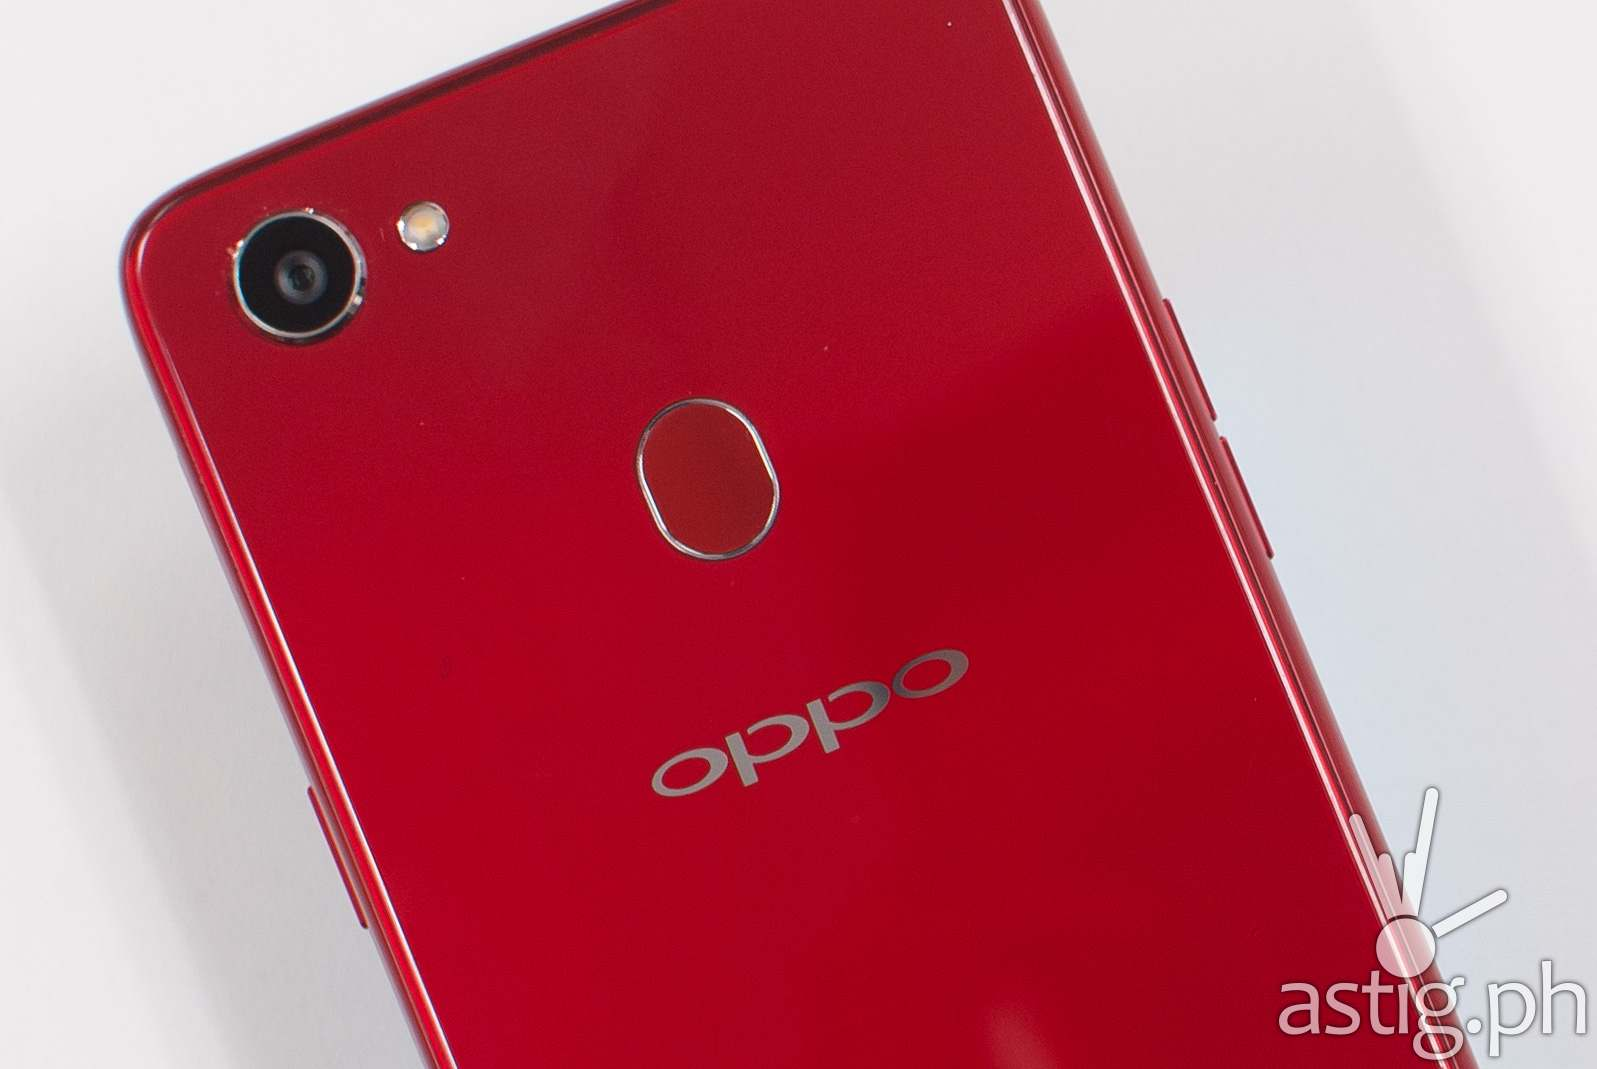 OPPO F7 back showing camera and fingerprint reader